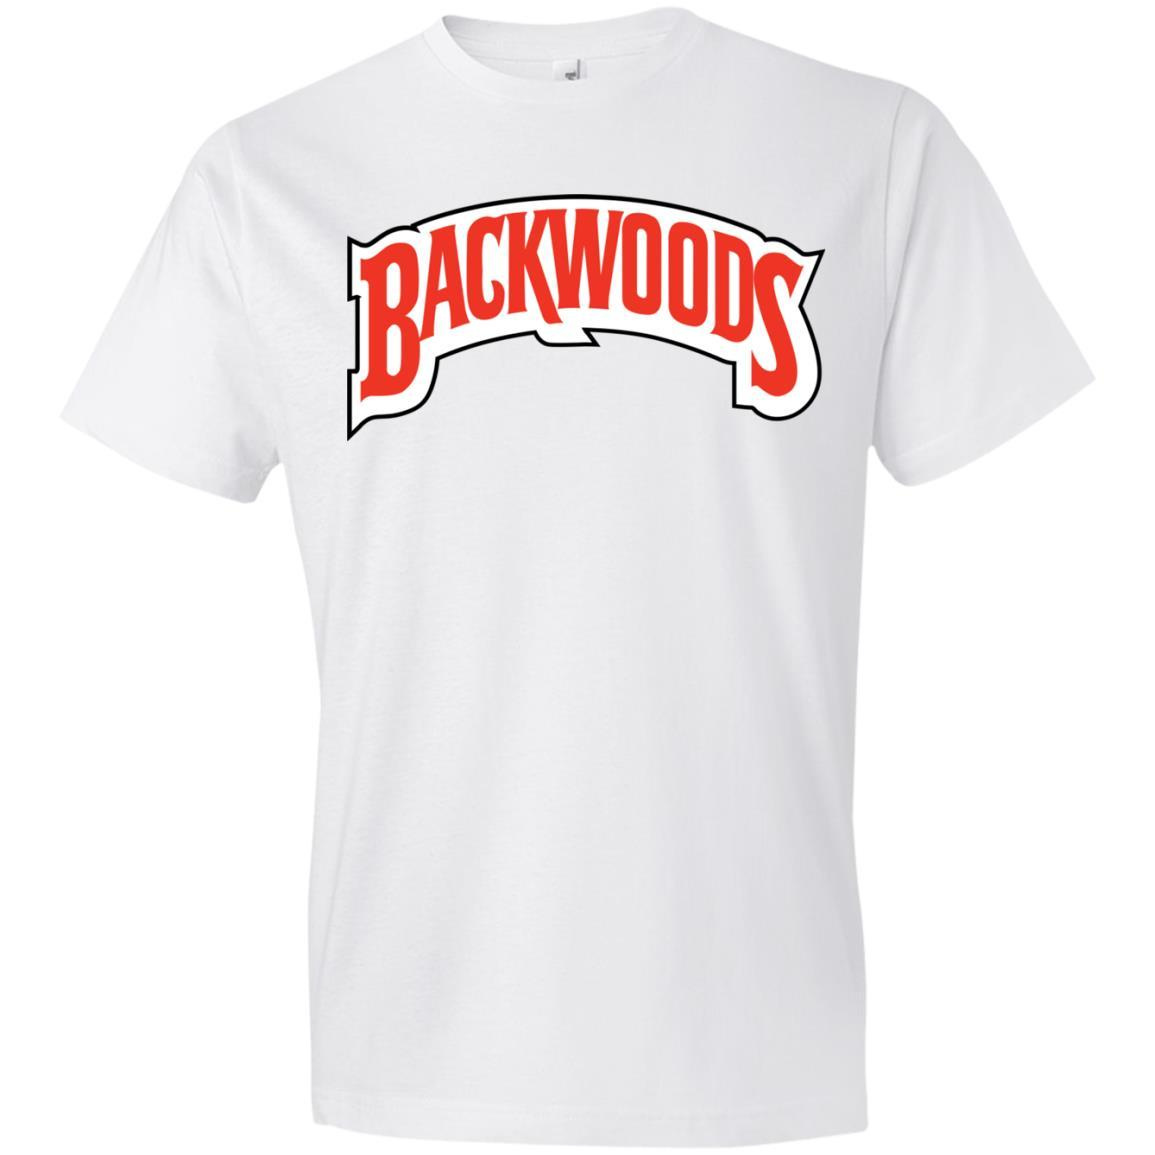 Backwoods - Anvil T-Shirt Style / Color / Size